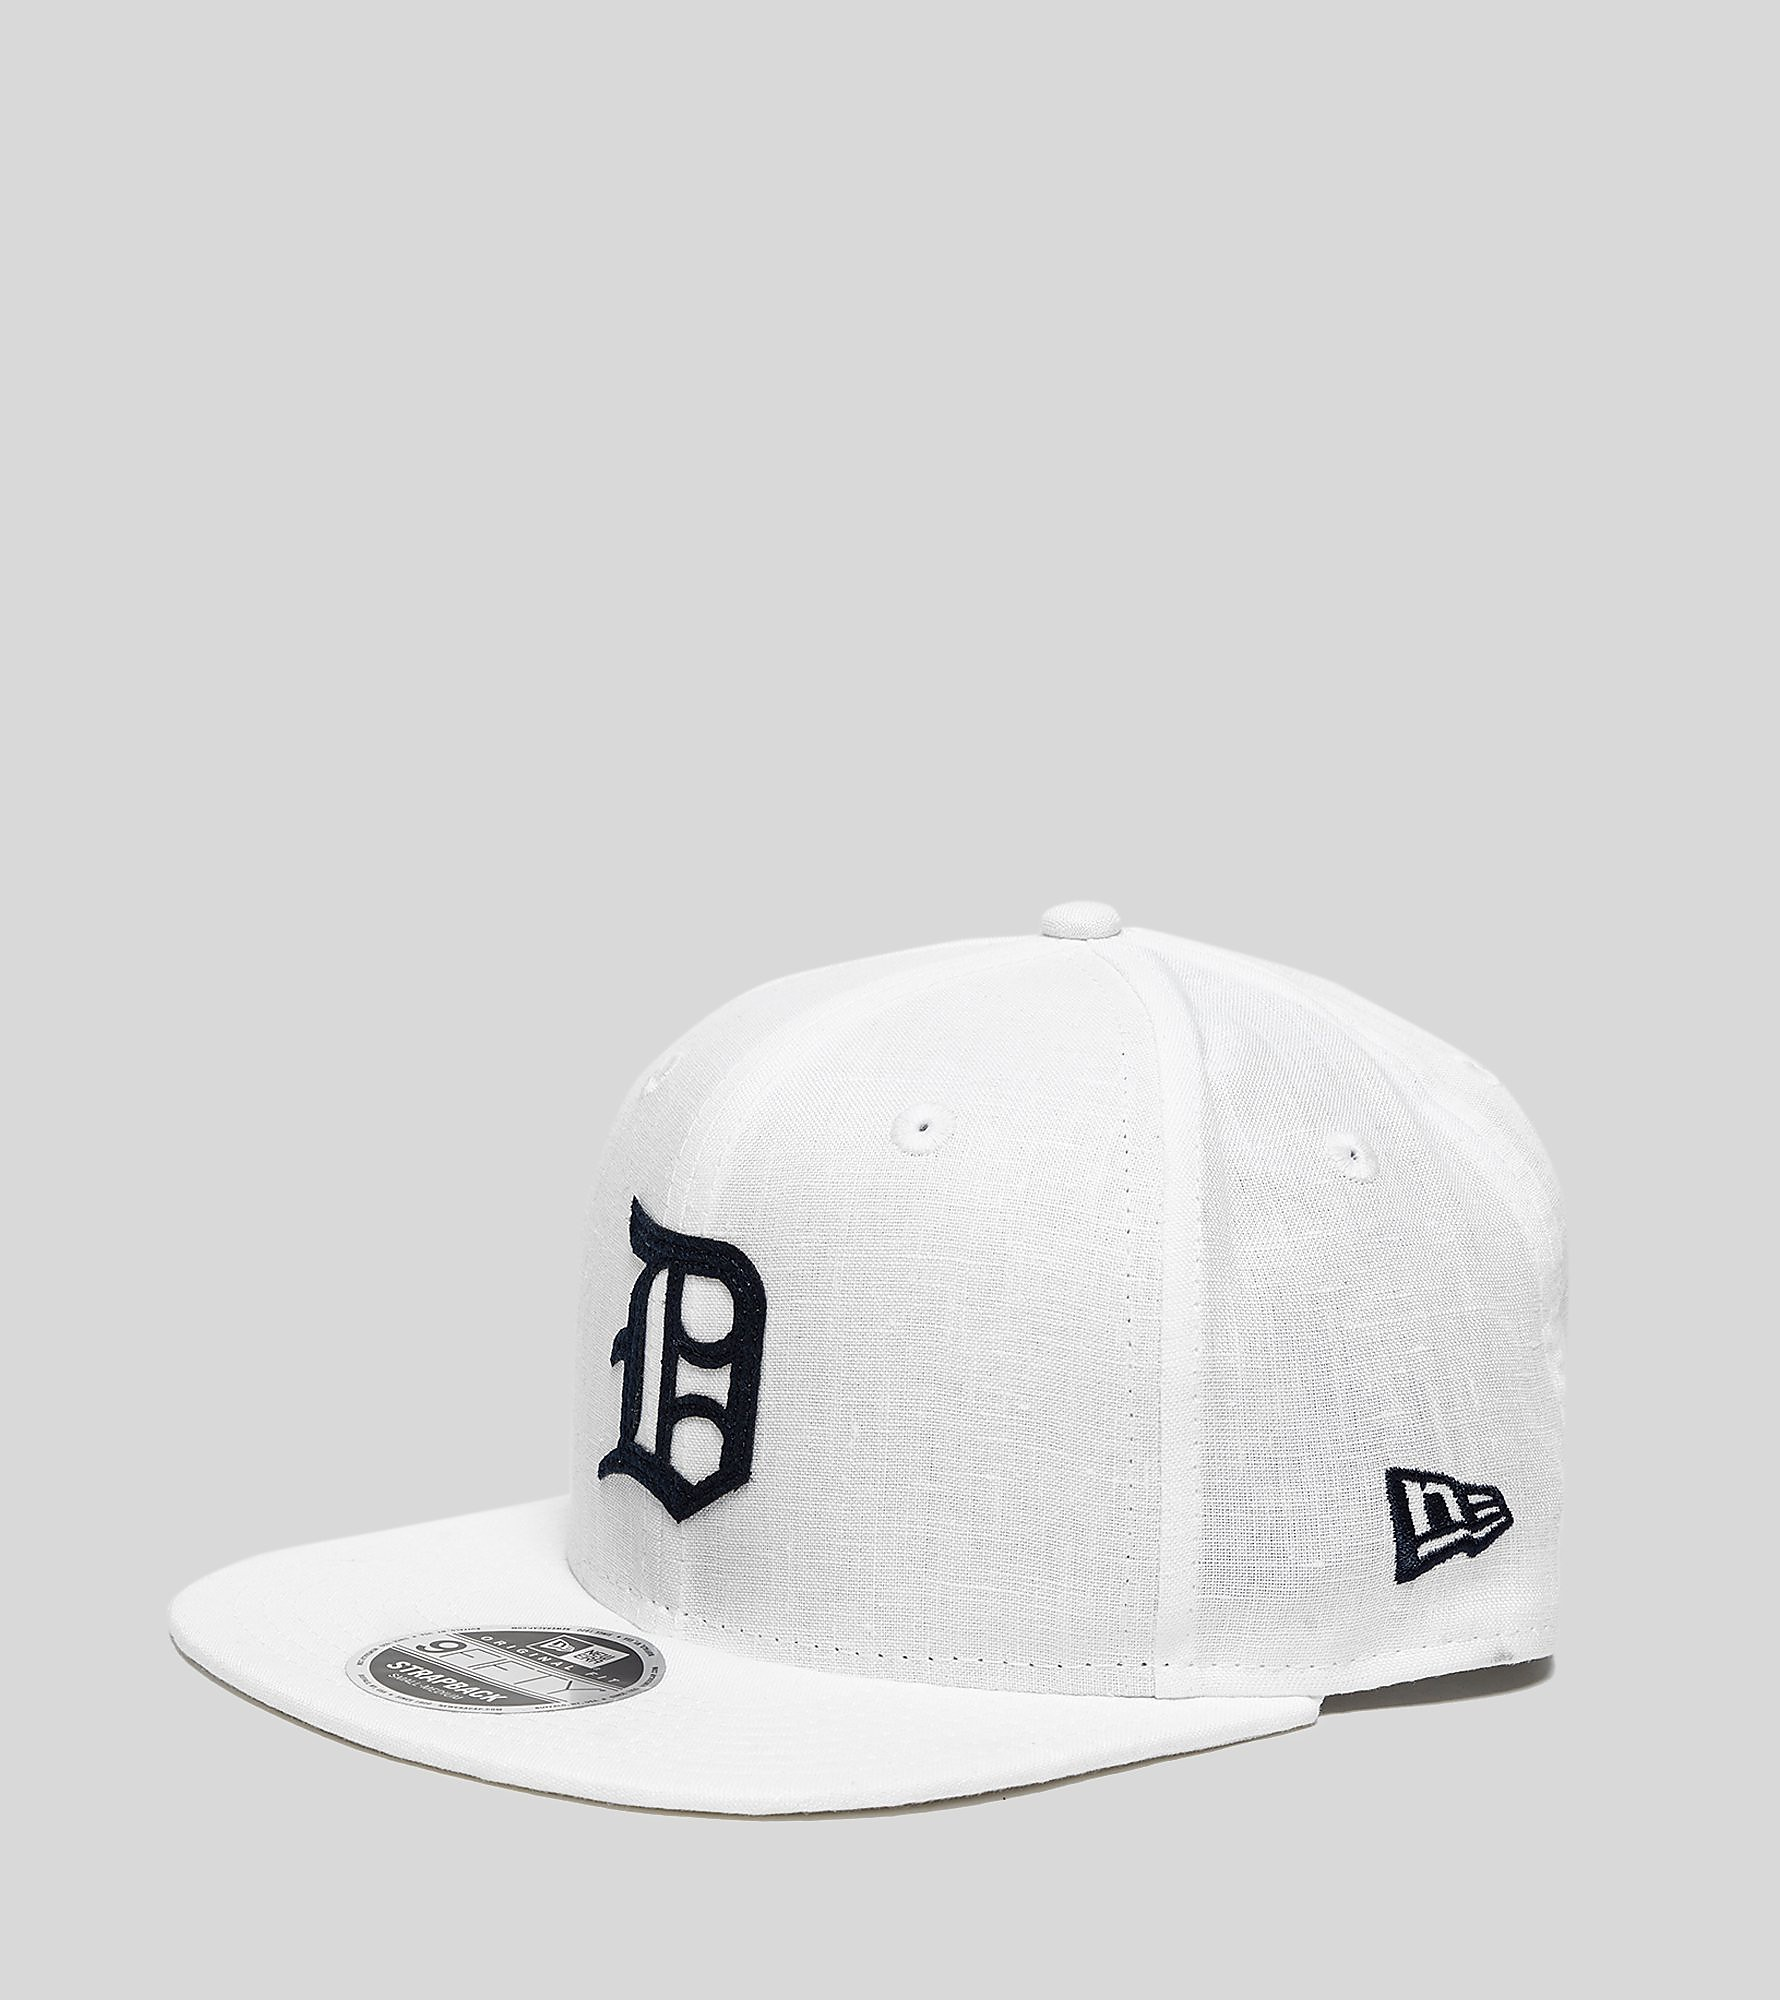 New Era 9FIFTY Linen Detroit Cap